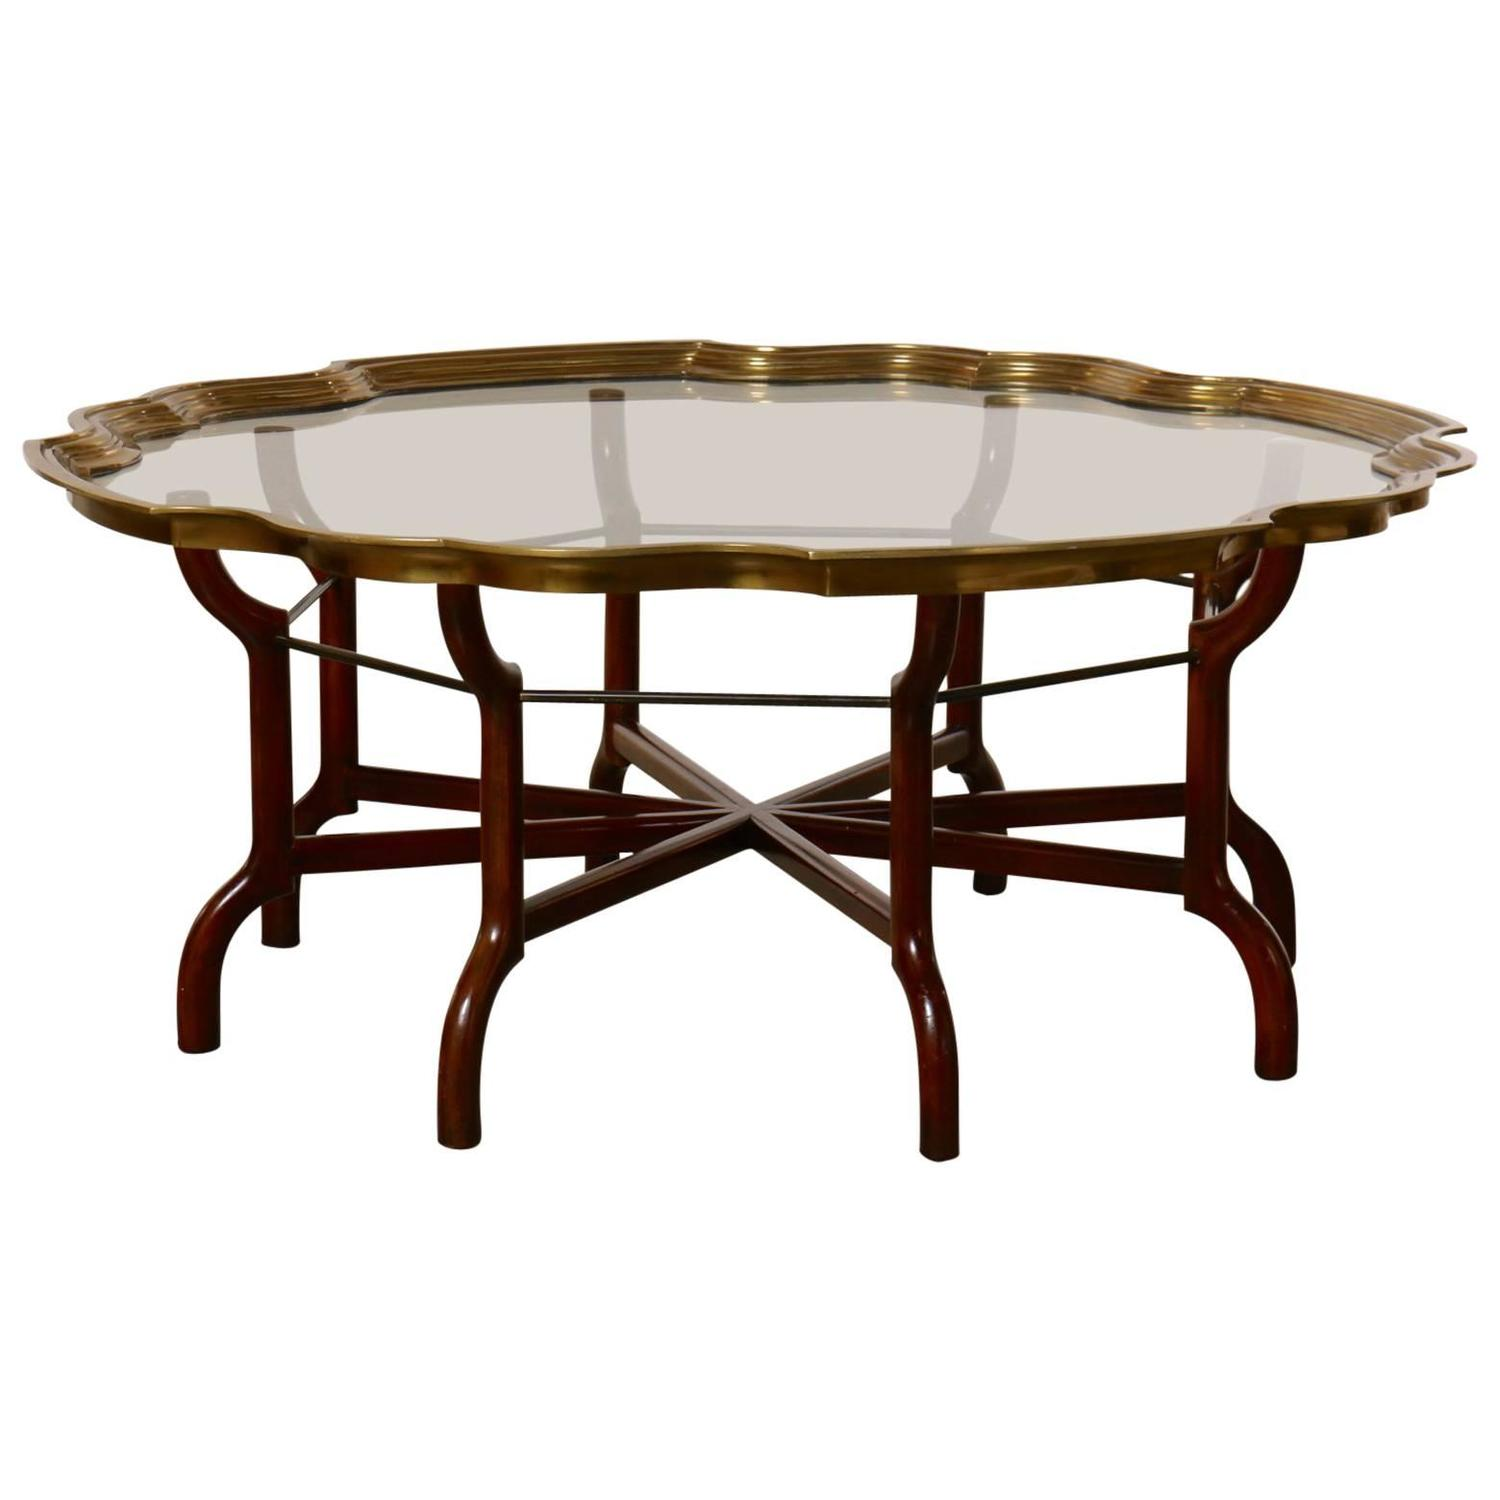 Baker Brass And Glass Round Tray Top Coffee Table At 1stdibs